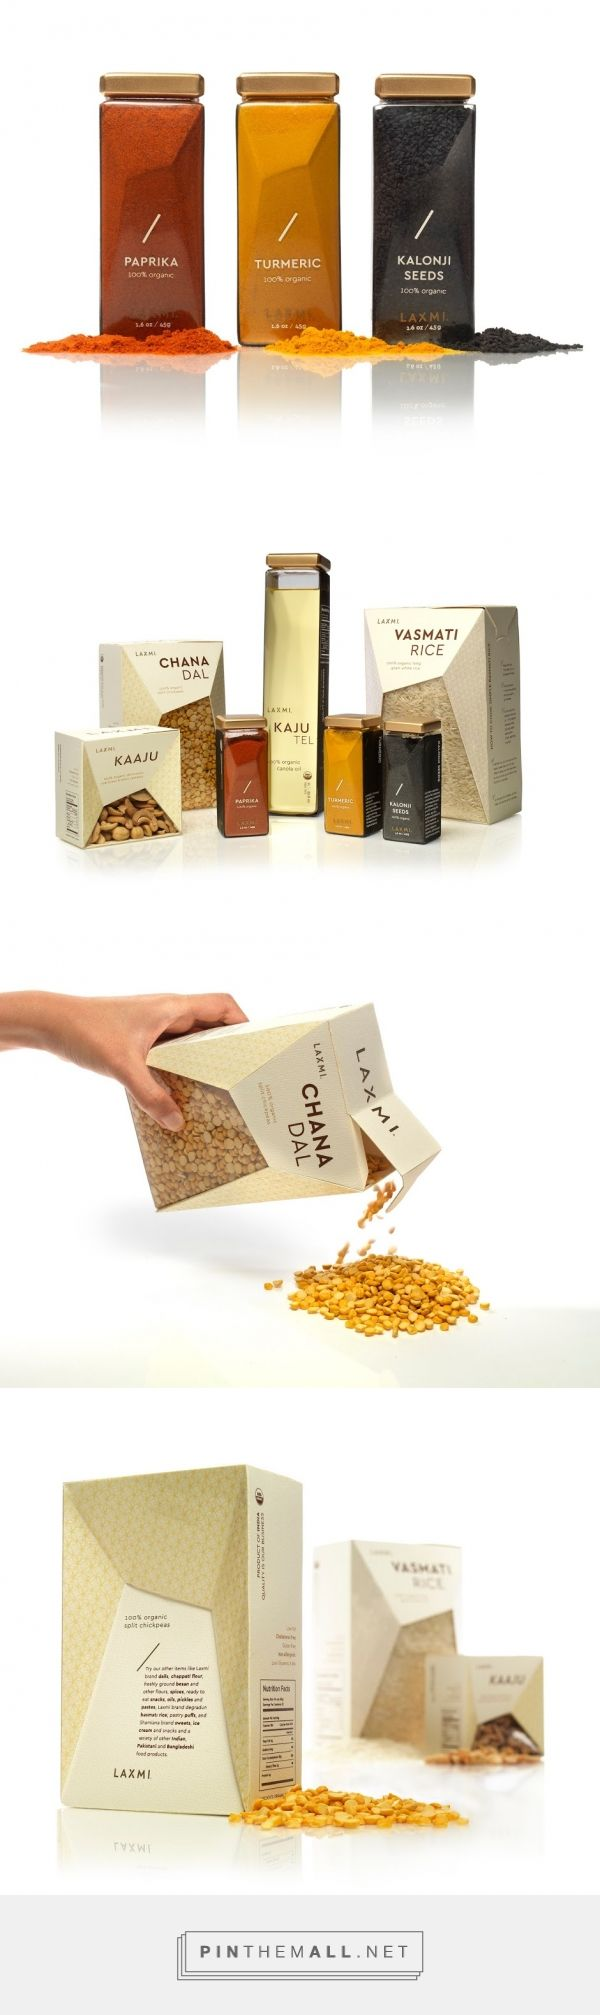 The Revolutionized Laxmi Indian Food packaging design concept by Ellie Cho - http://www.packagingoftheworld.com/2016/06/the-revolutionized-laxmi-student-project.html